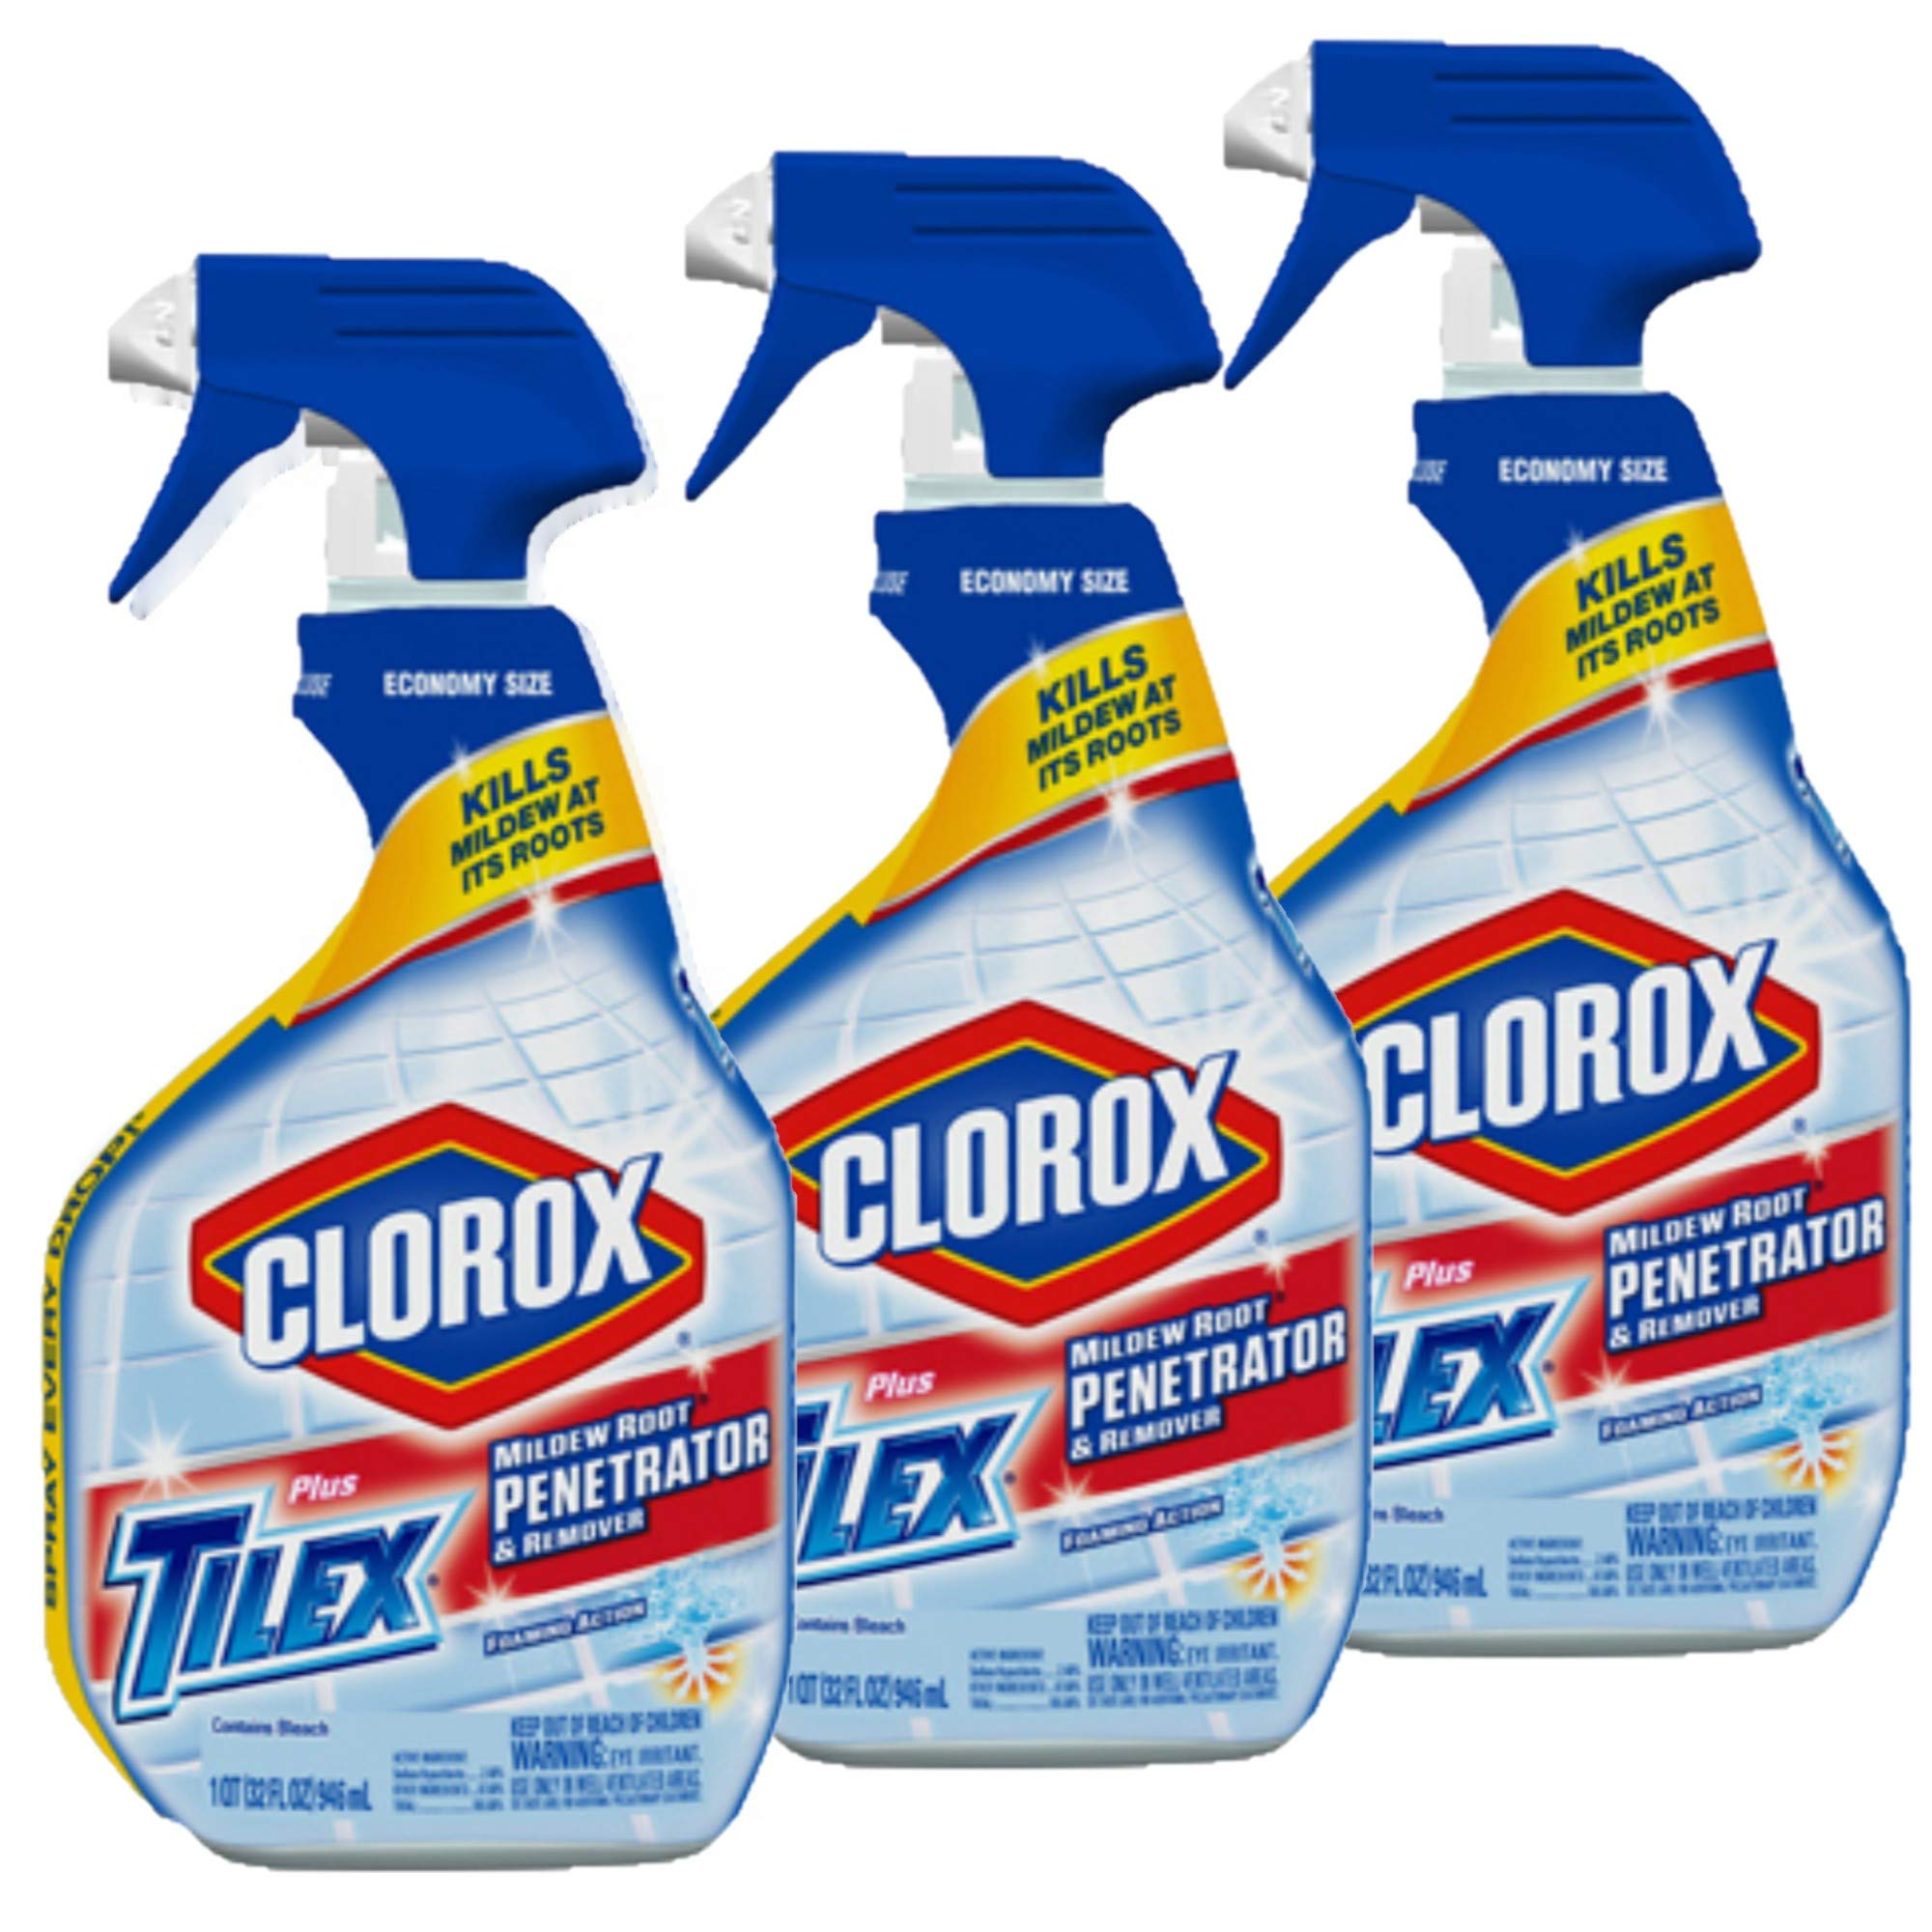 Tilex 00263 Mildew Root Penetrator and Remover Spray Bottle, 32 fl oz Trigger Spray Bottle - 3 Pack by Clorox (Image #1)